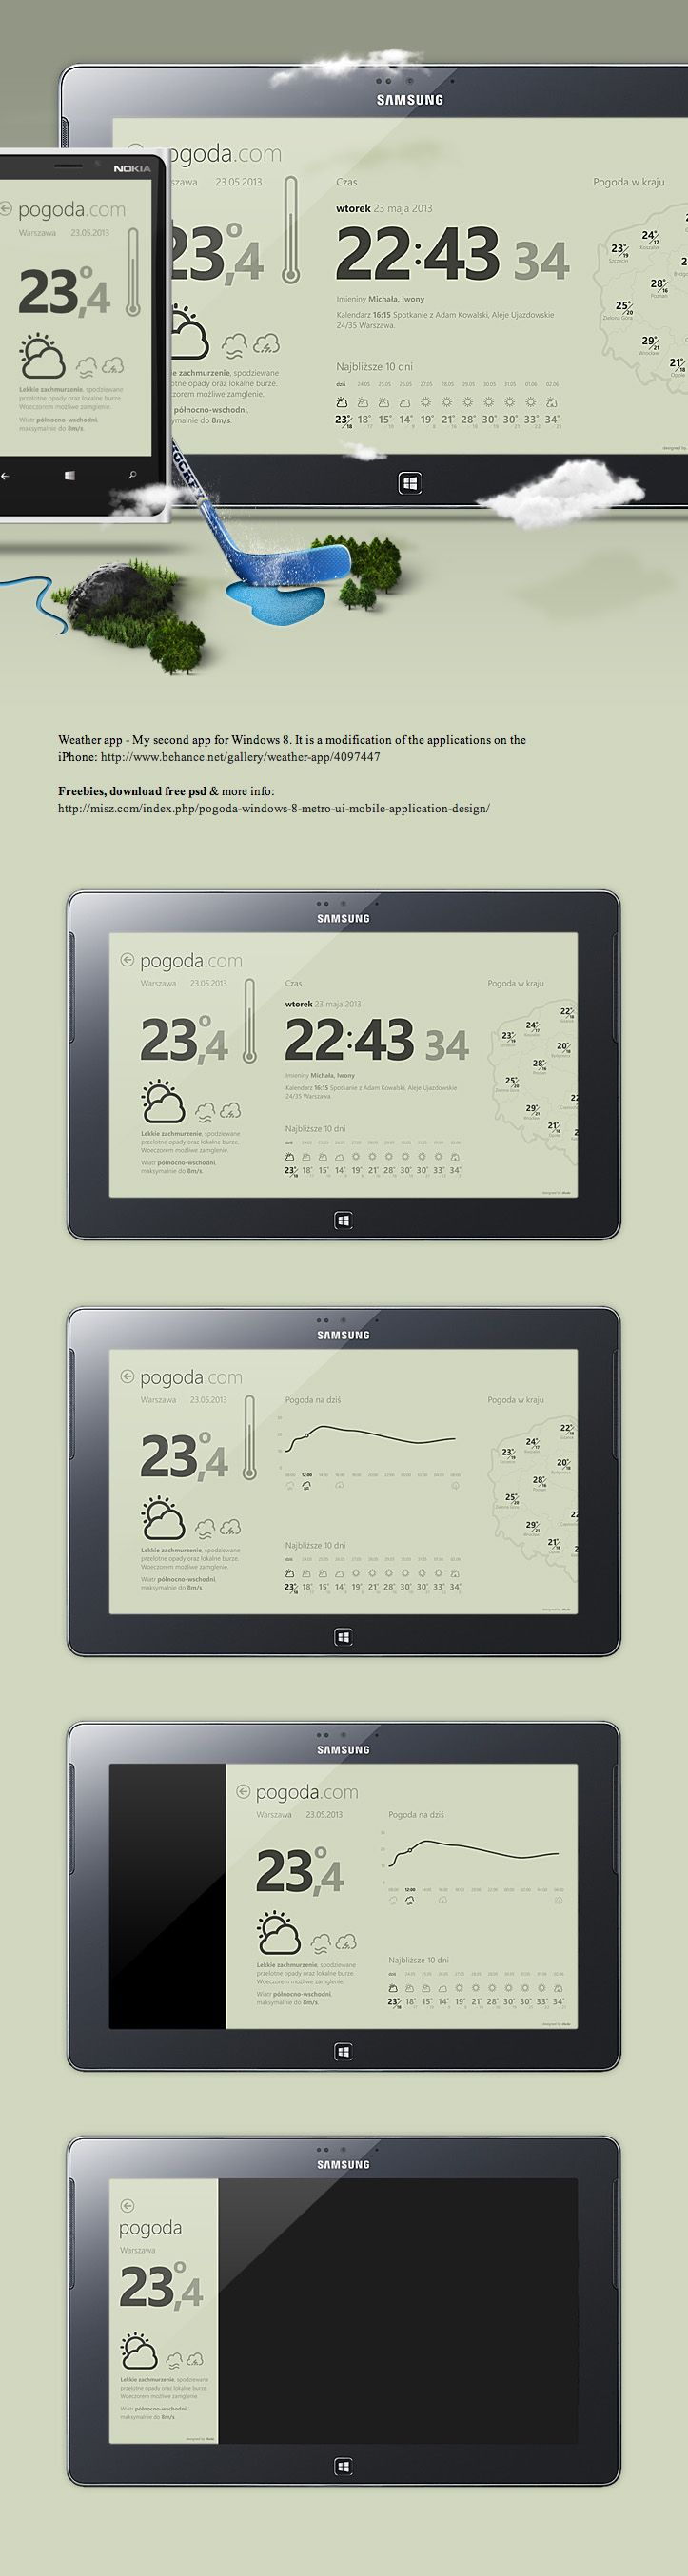 Weather, Windows 8 UI mobile application by Michal Galubinski, via Behance *** free psd & more information: http://misz.com/index.php/pogoda-windows-8-metro-ui-mobile-application-design/